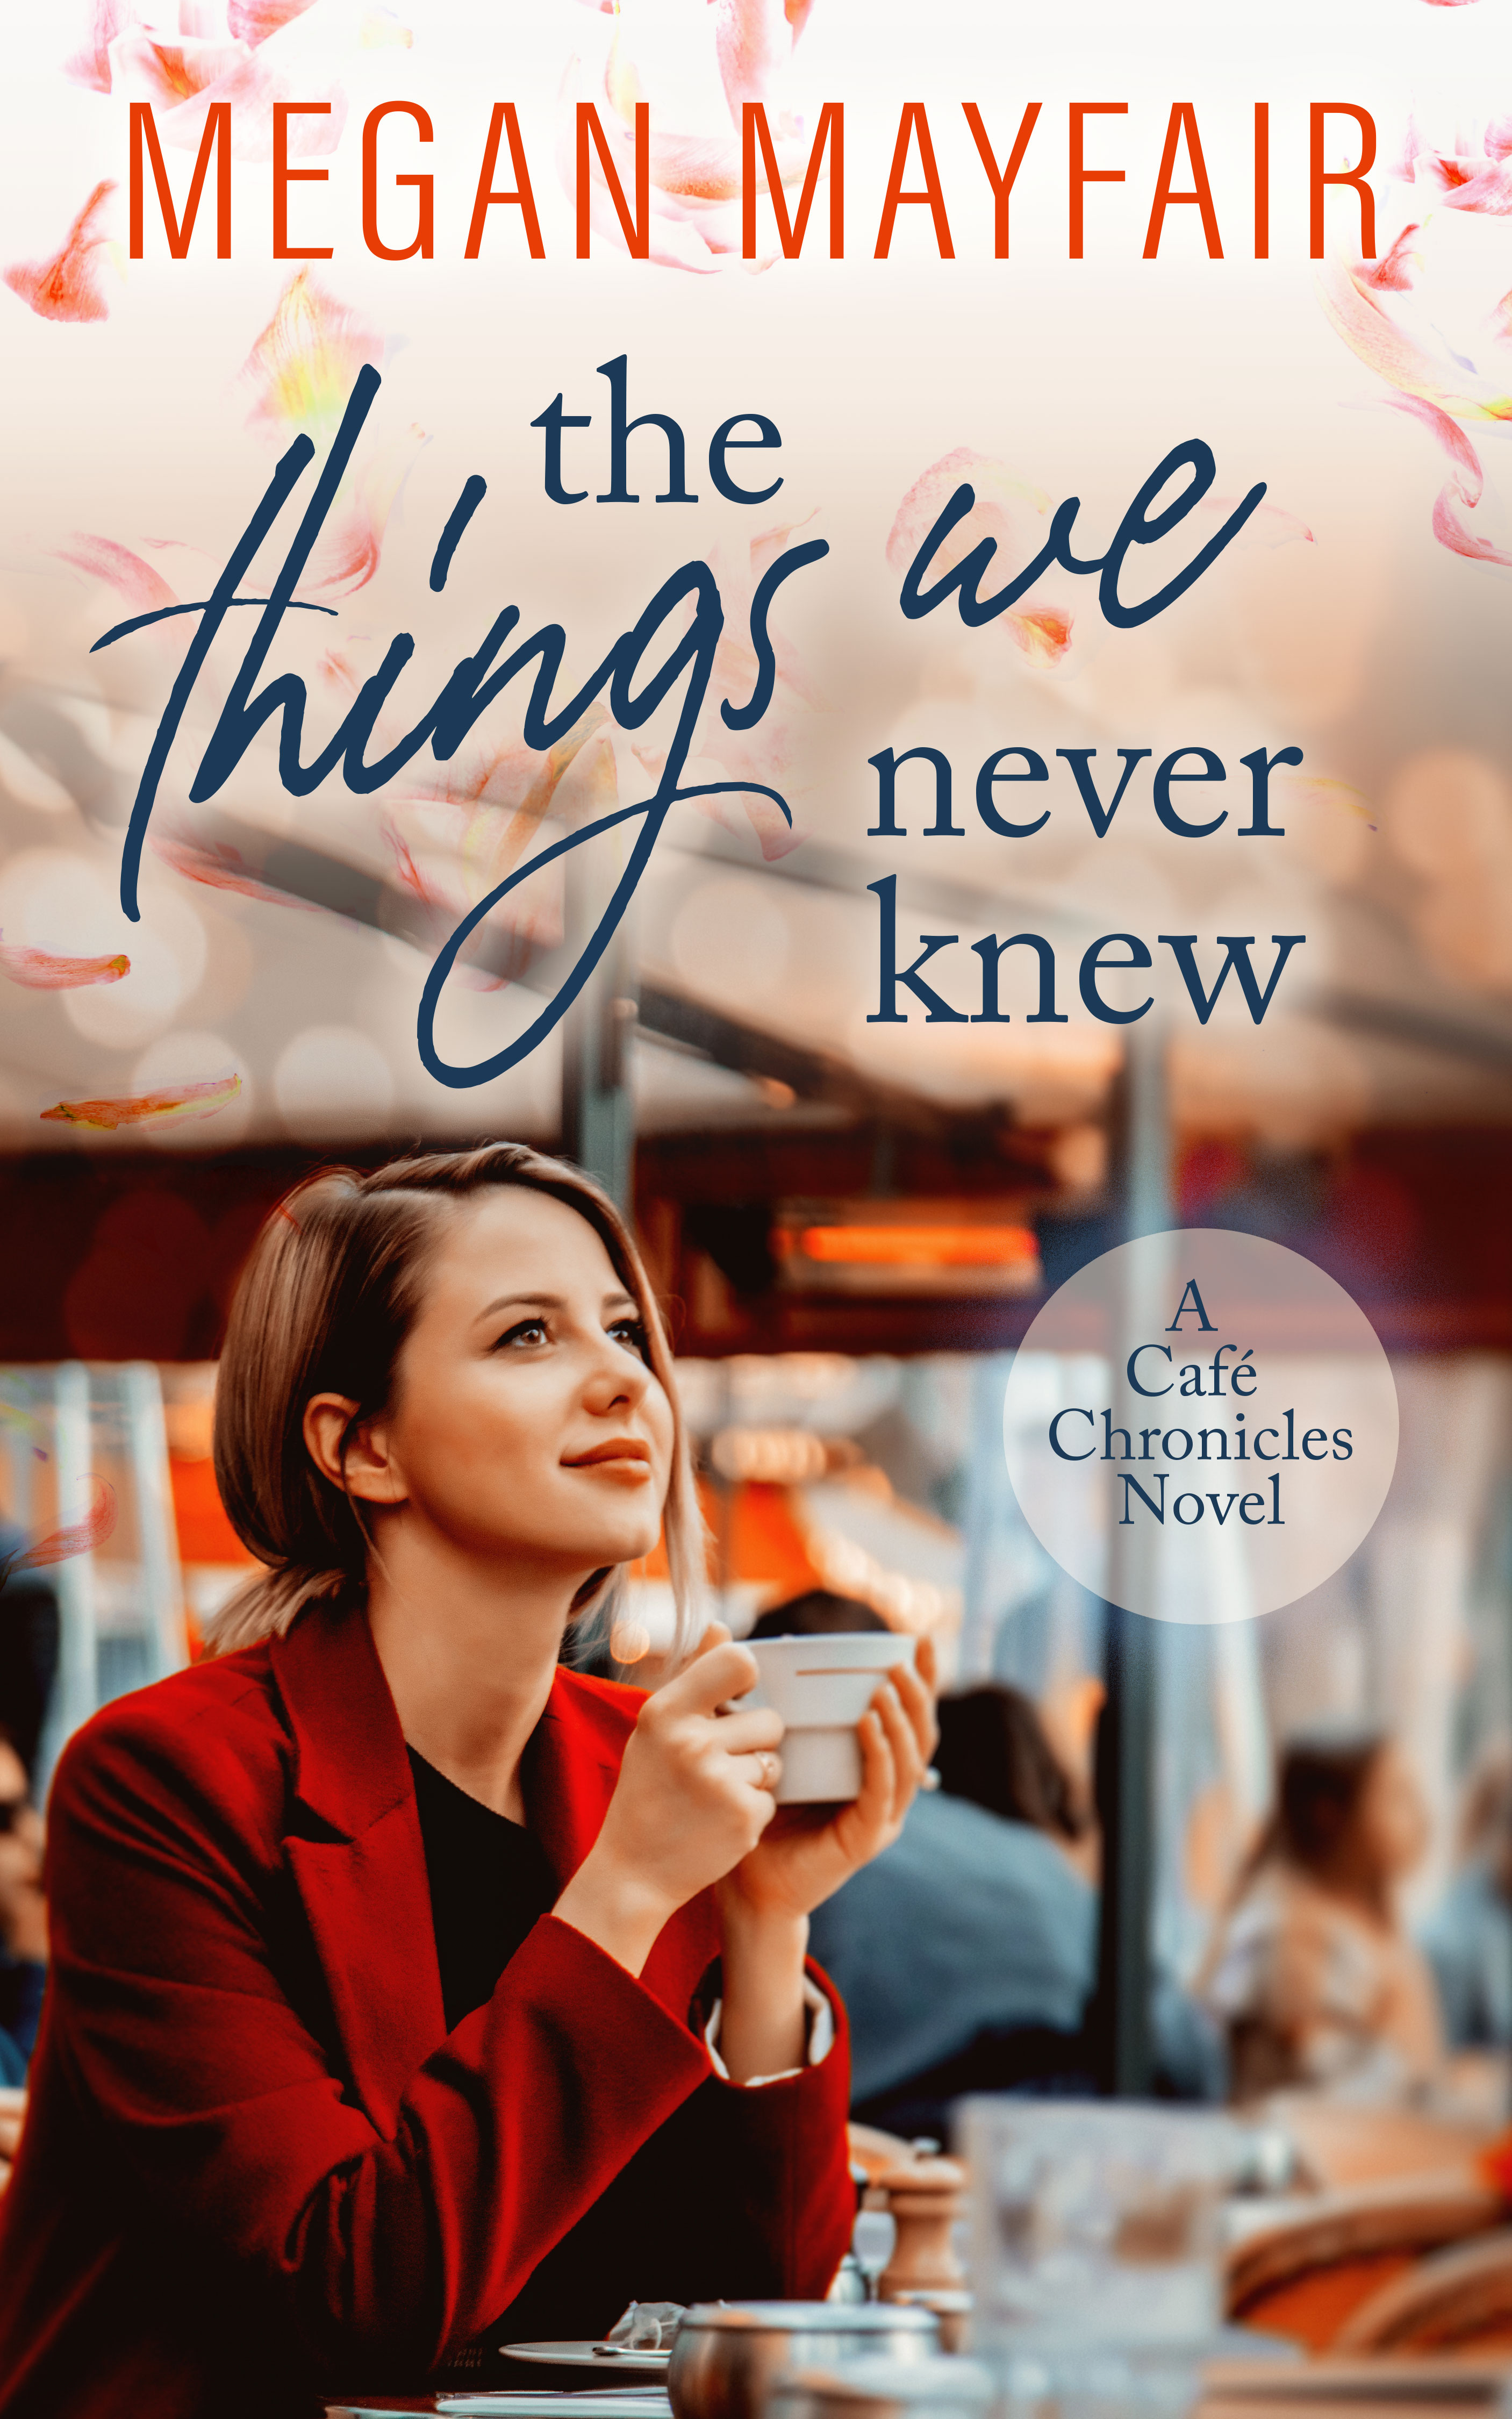 The Things We Never Knew by Megan Mayfair